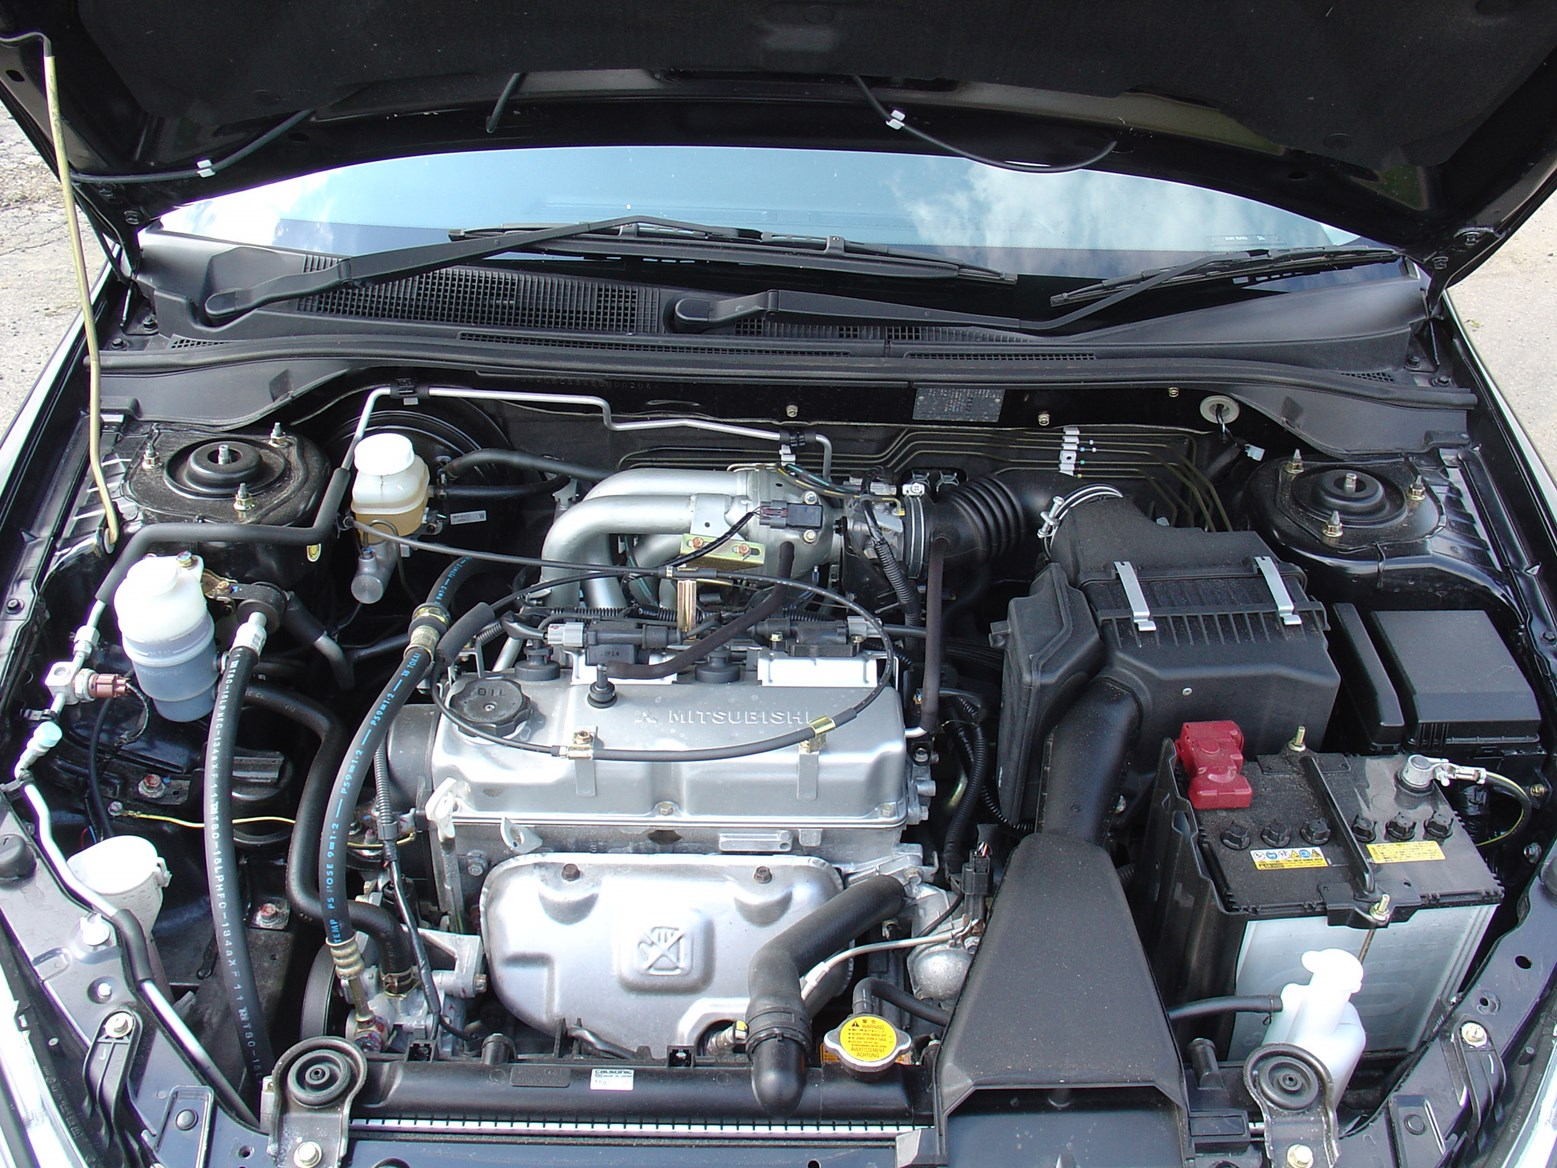 Dsc on 2008 Mitsubishi Lancer Engine